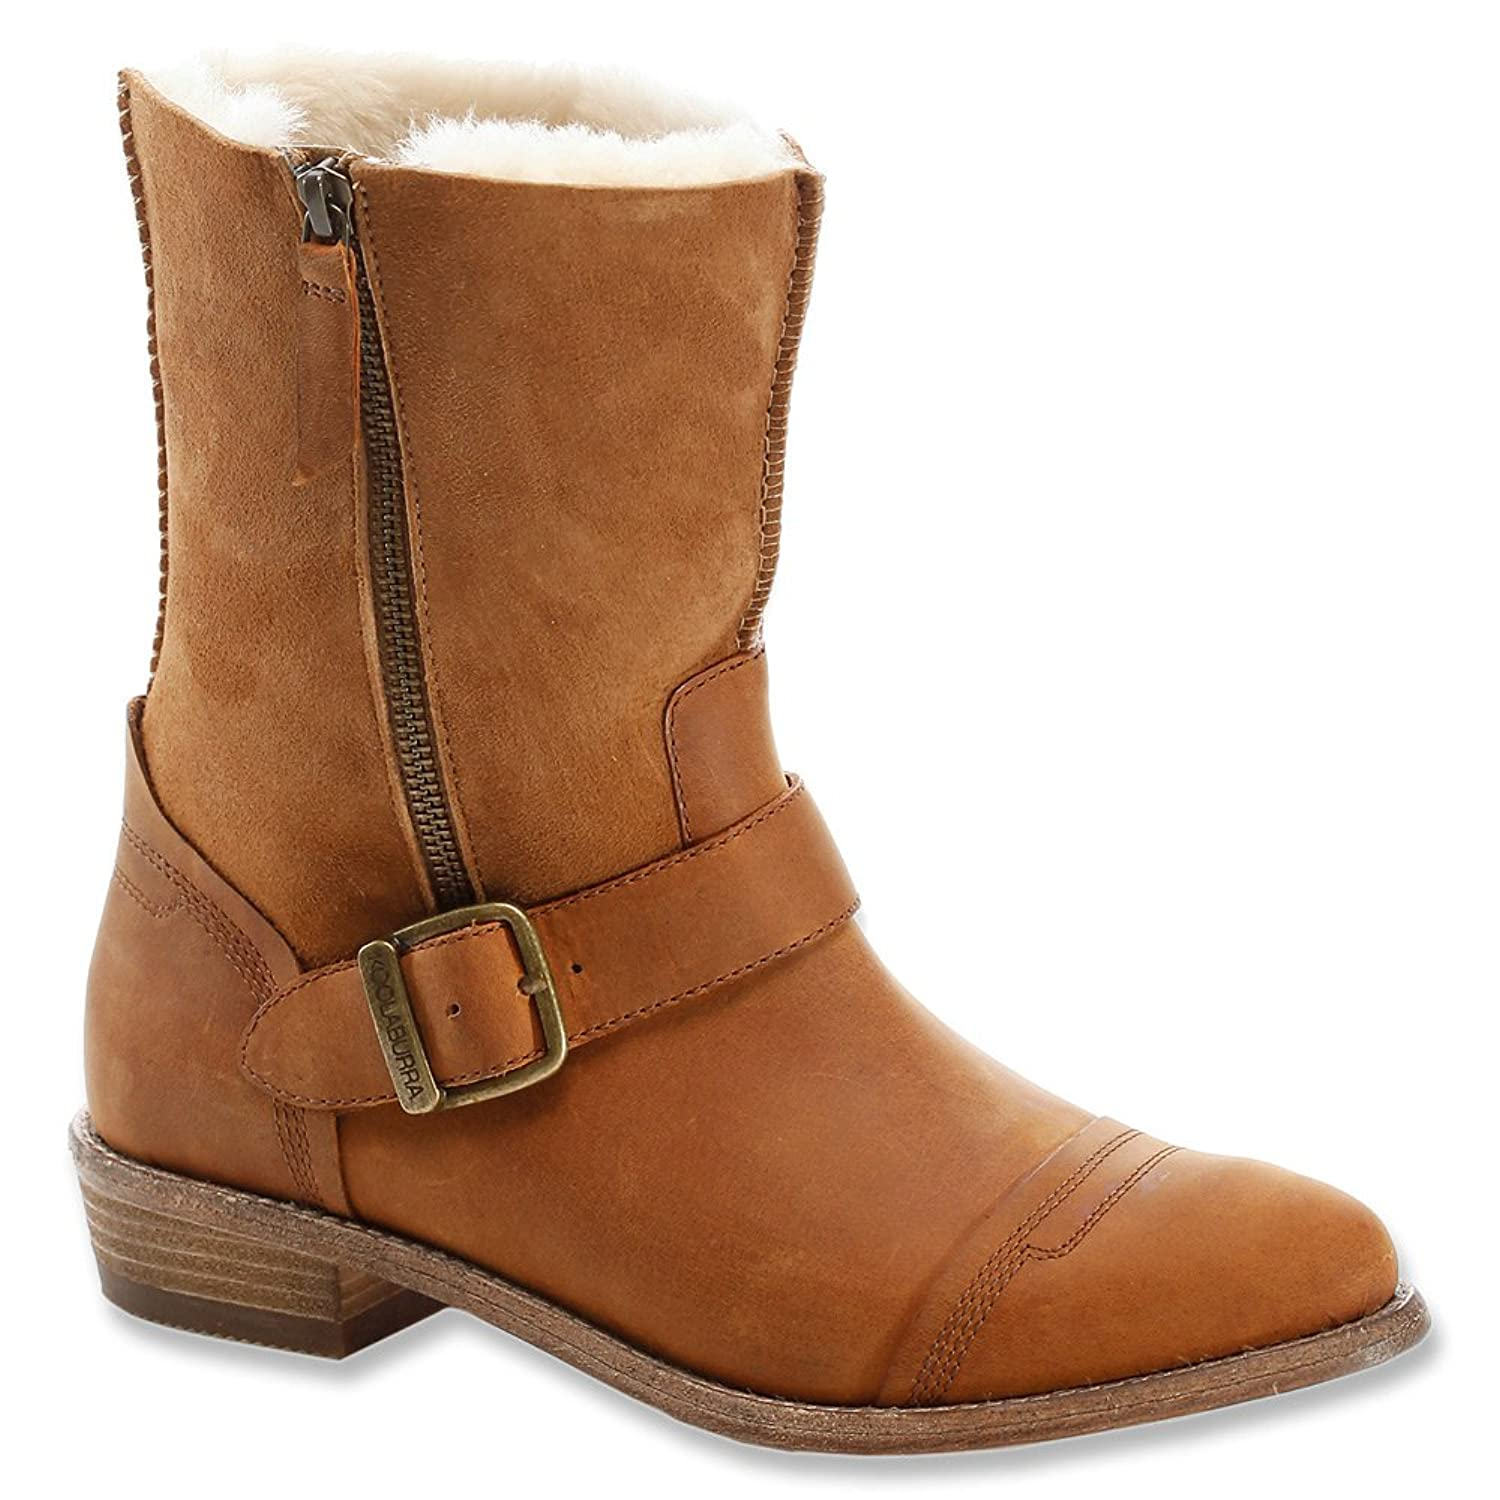 Koolaburra Women's Duarte Boot